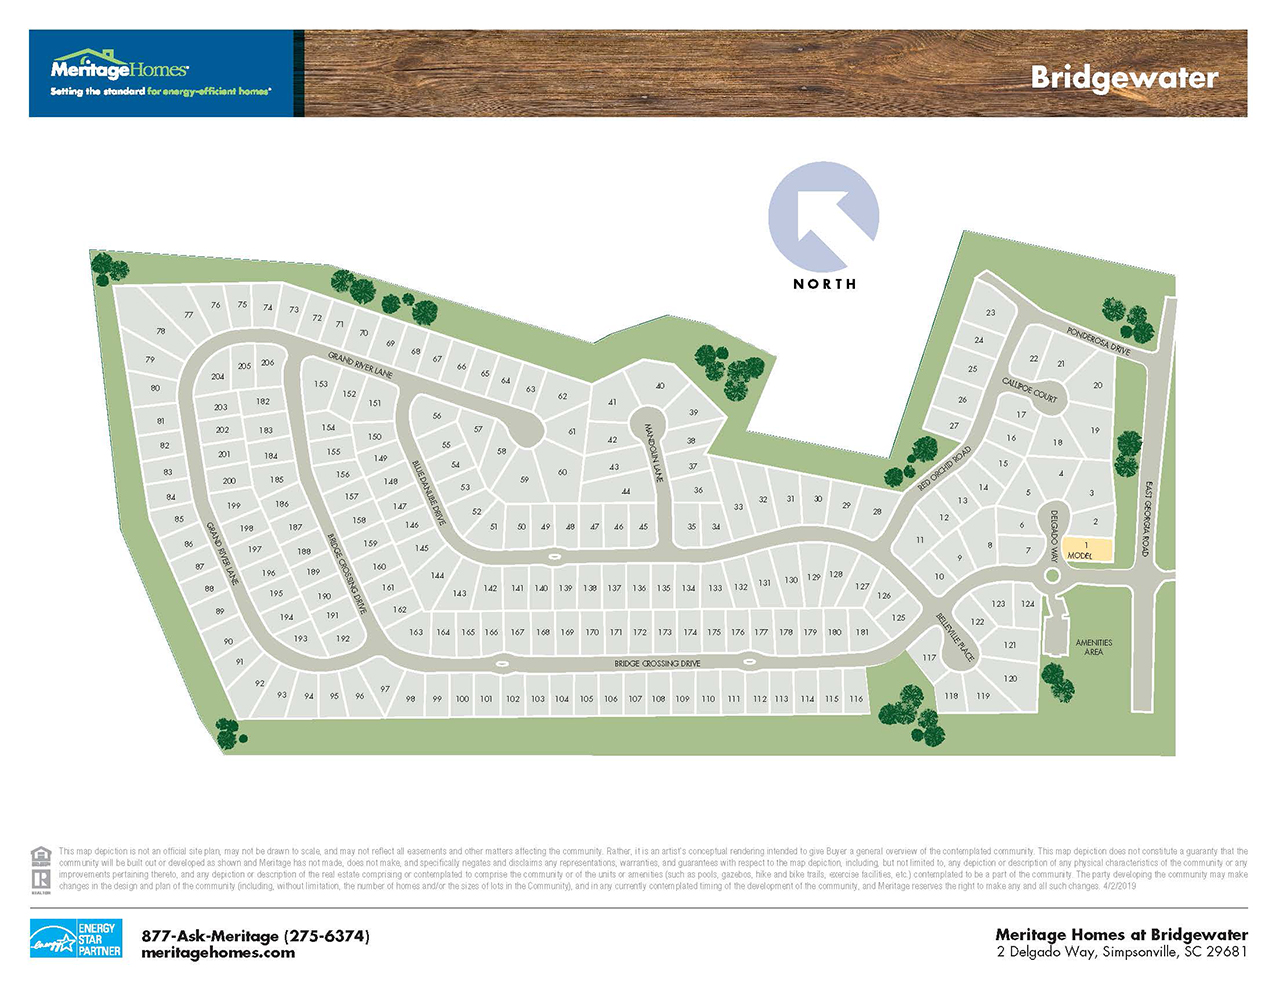 Bridgewater site map